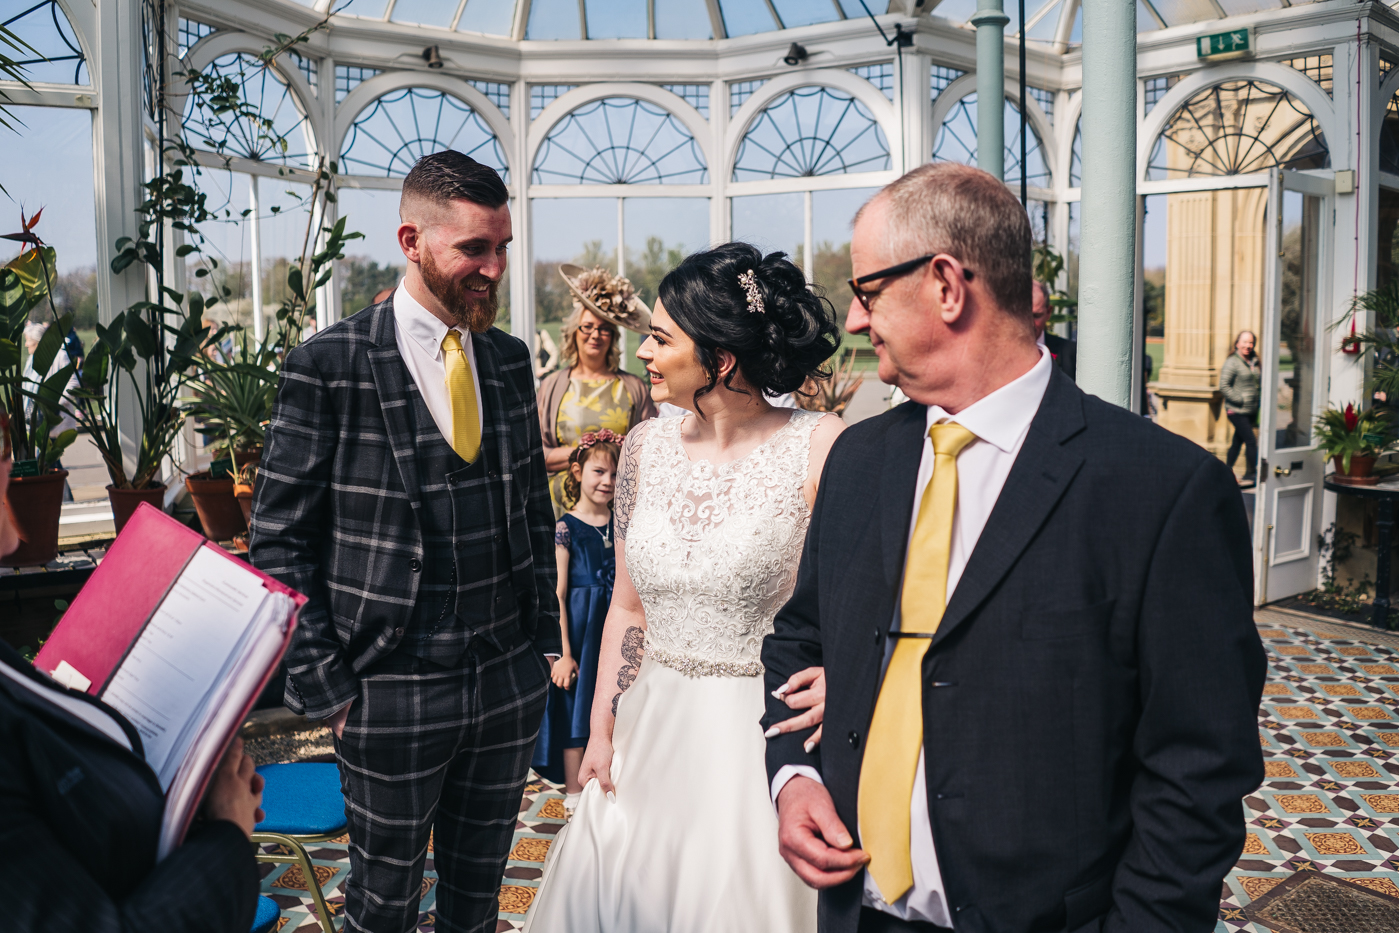 a bride and groom smile at each other during their wedding ceremony. preston park museum wedding stockton teesside middlesbrough wedding photographer